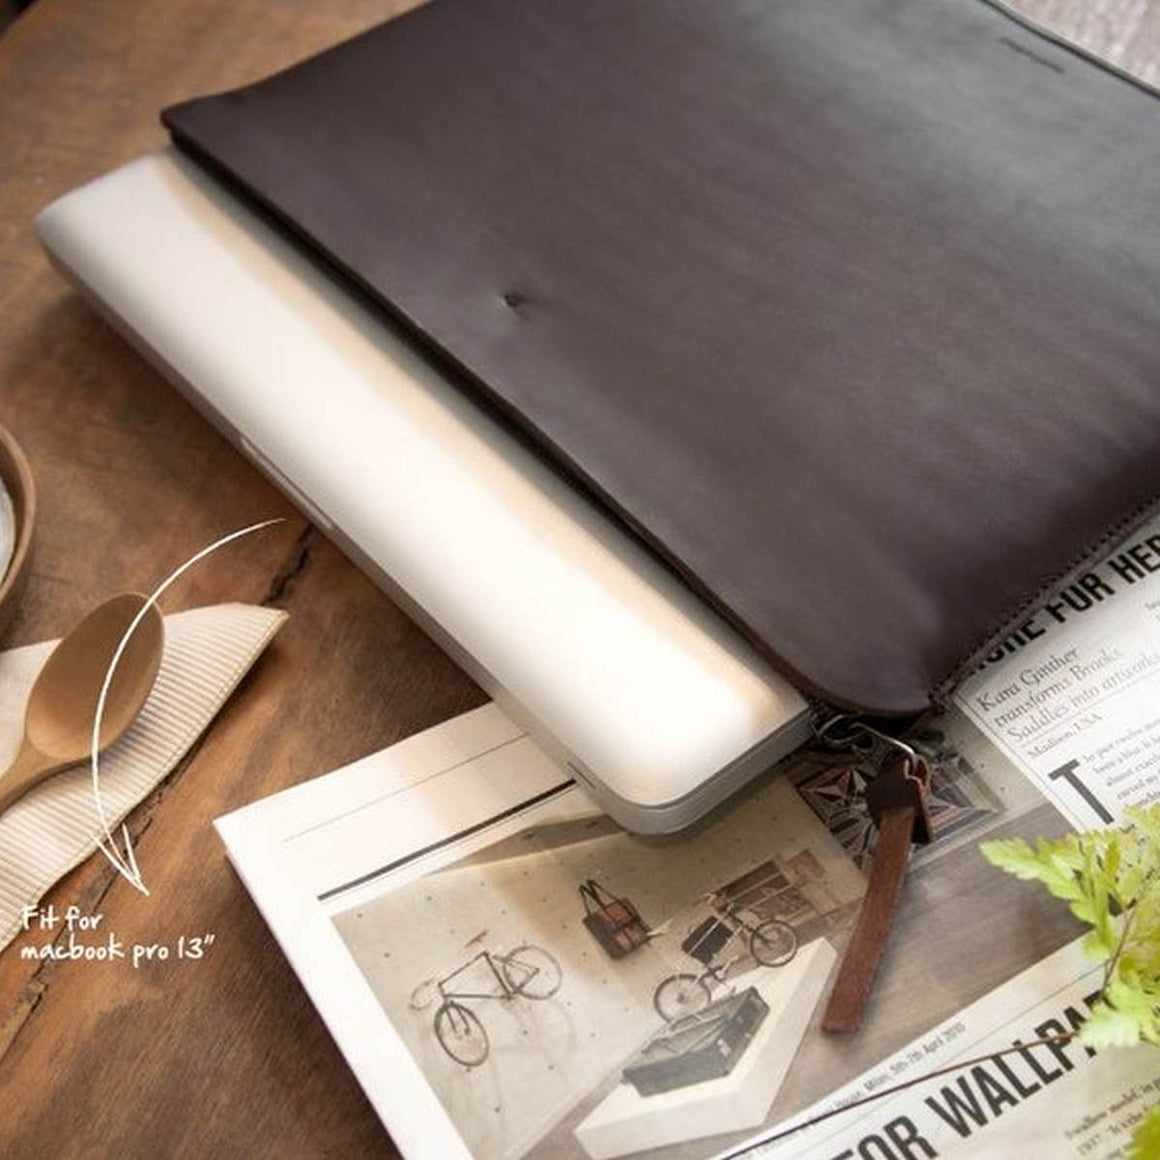 A dark brown leather laptop case with a zip closure. Shown holding a laptop.